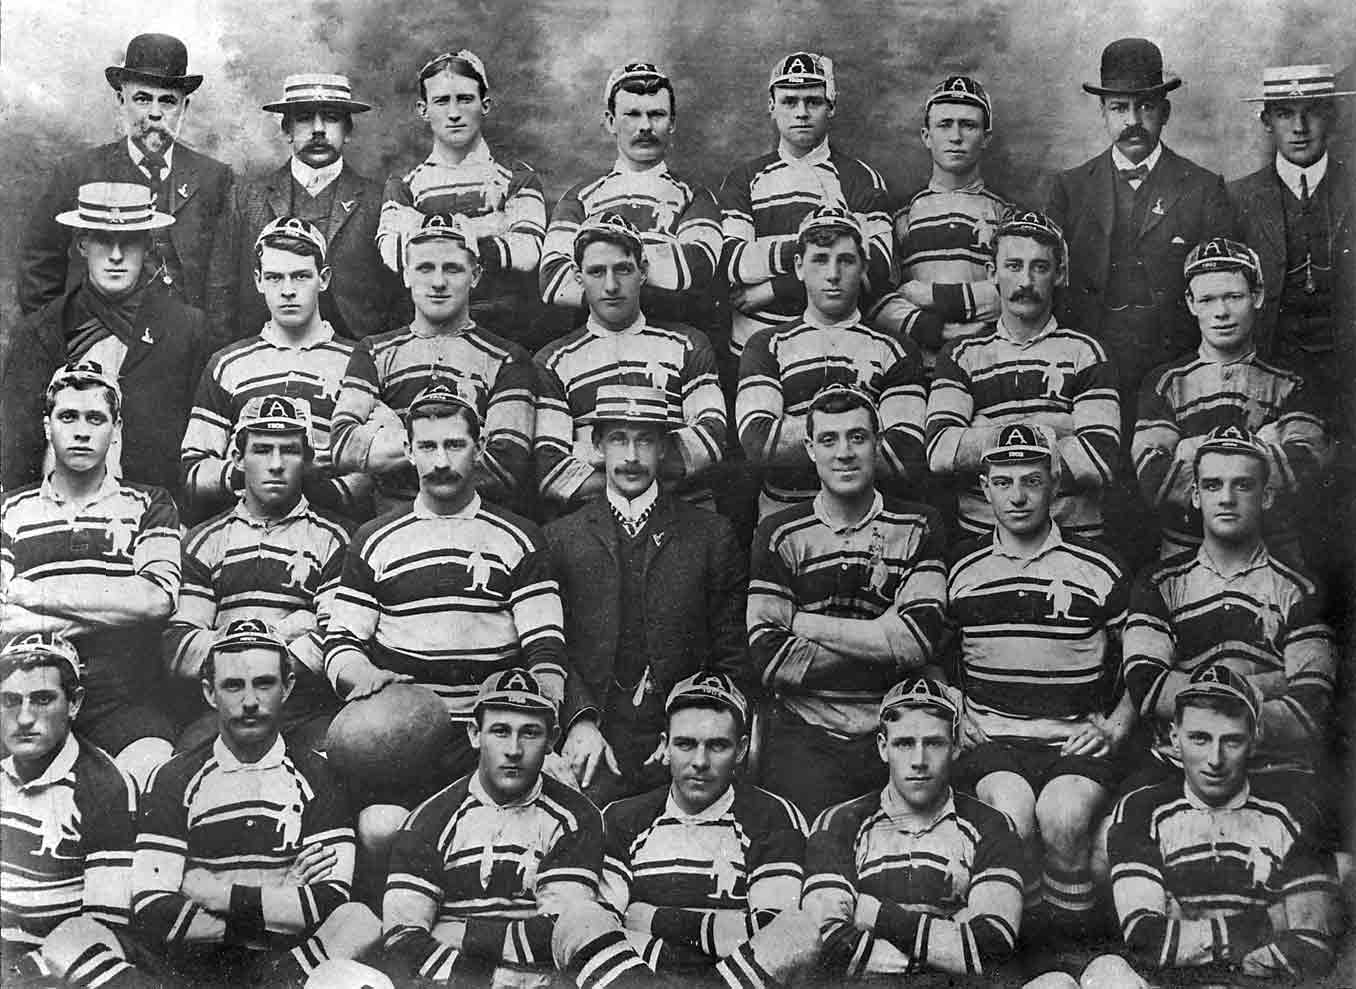 Group shot of Australian rugby union team, in four rows.